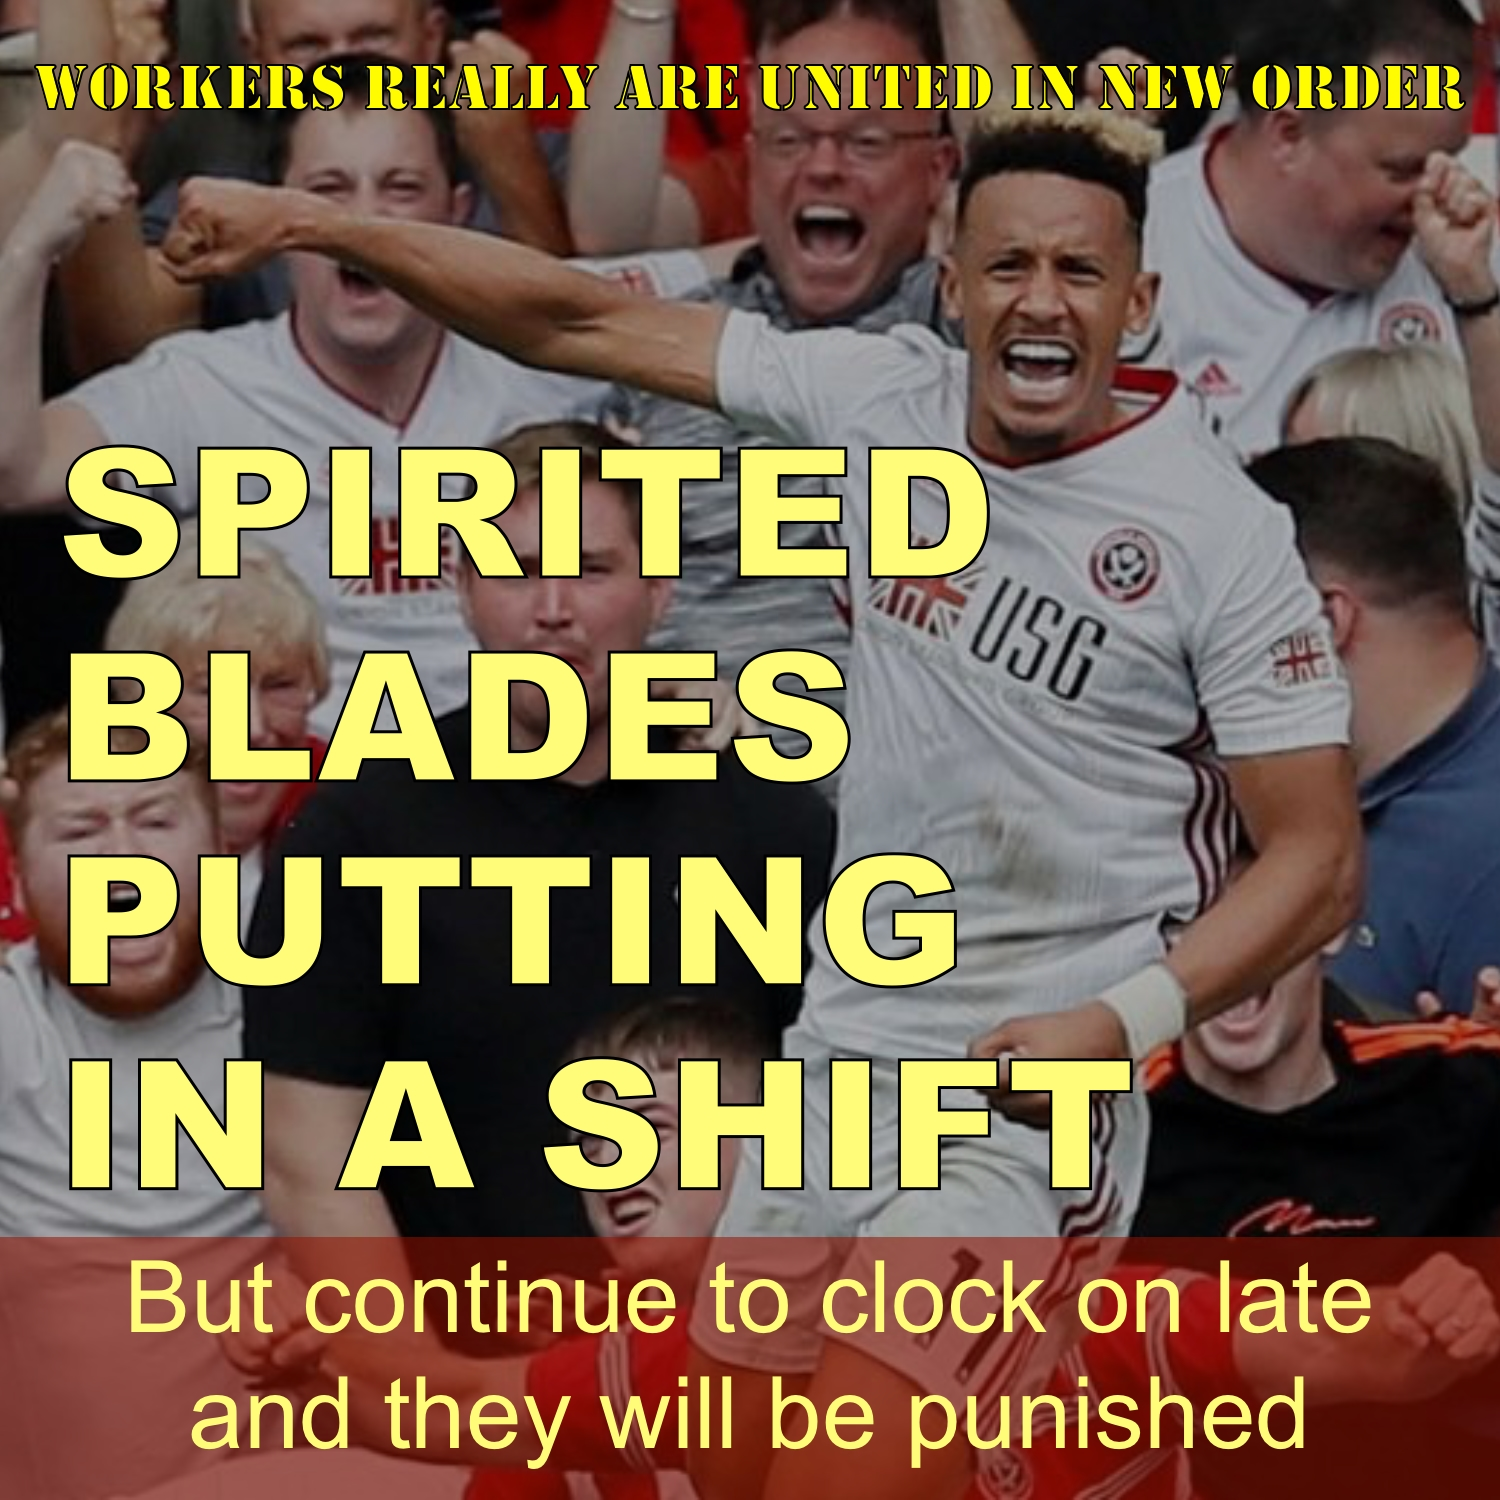 Sheffield United are proving their is nothing to fear for Blades in Premier League, but they must start as they finish.